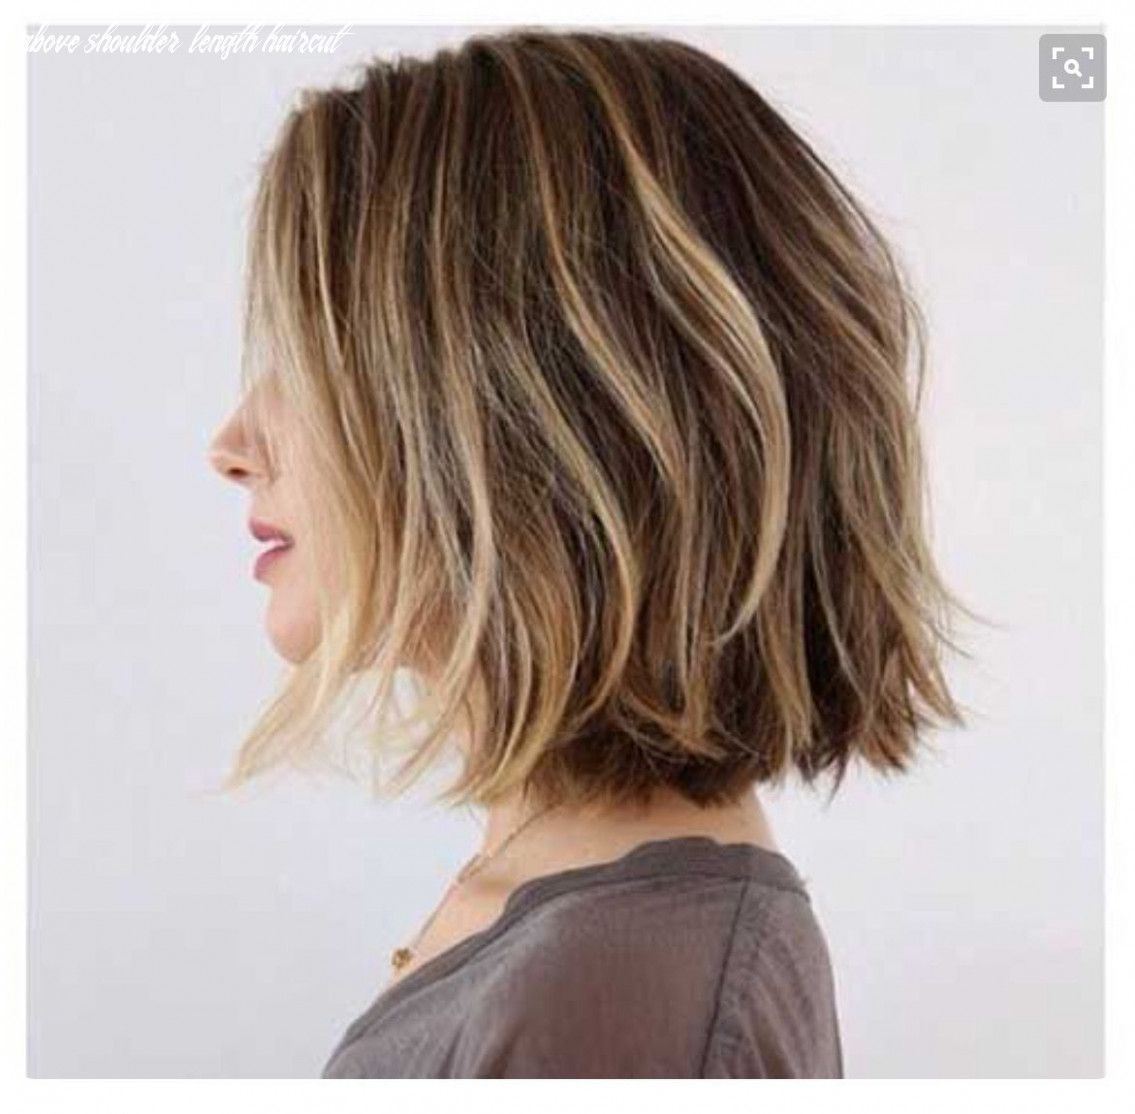 9 Above Shoulder Length Haircut In 2020 Hair Styles Bob Hairstyles Short Hair Styles